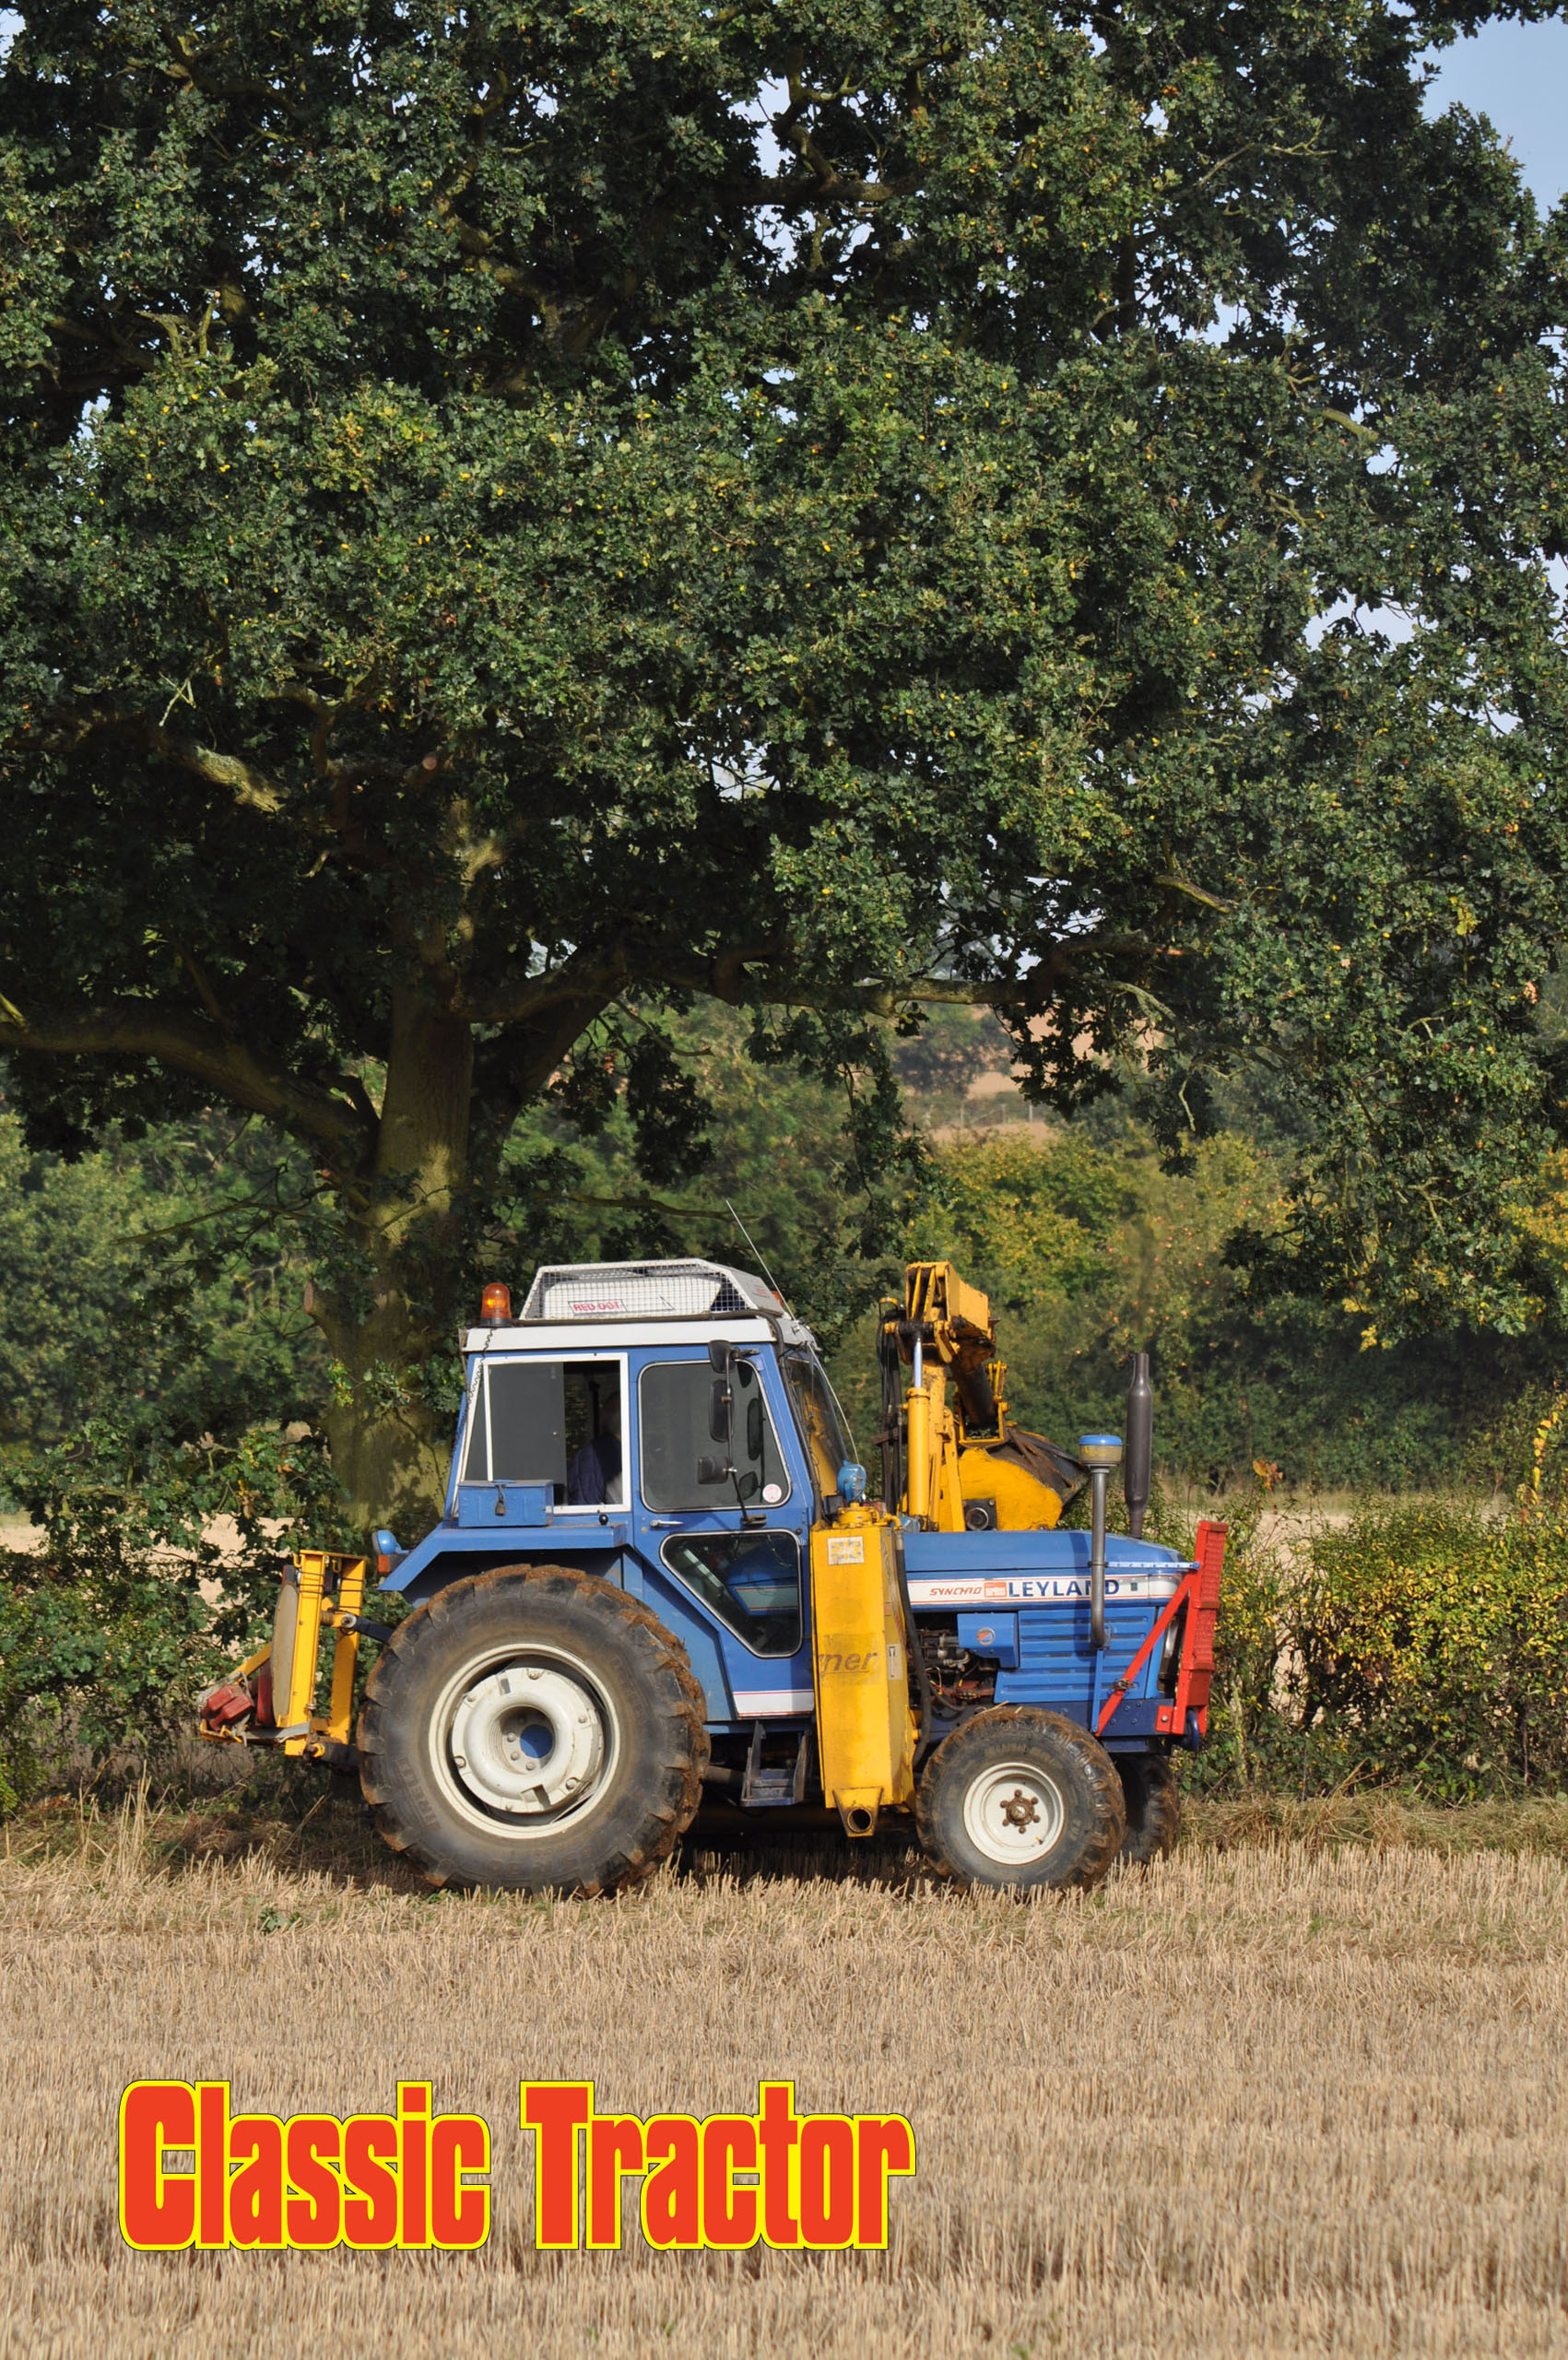 Leyland 272 Synchro Turner trimmer combination